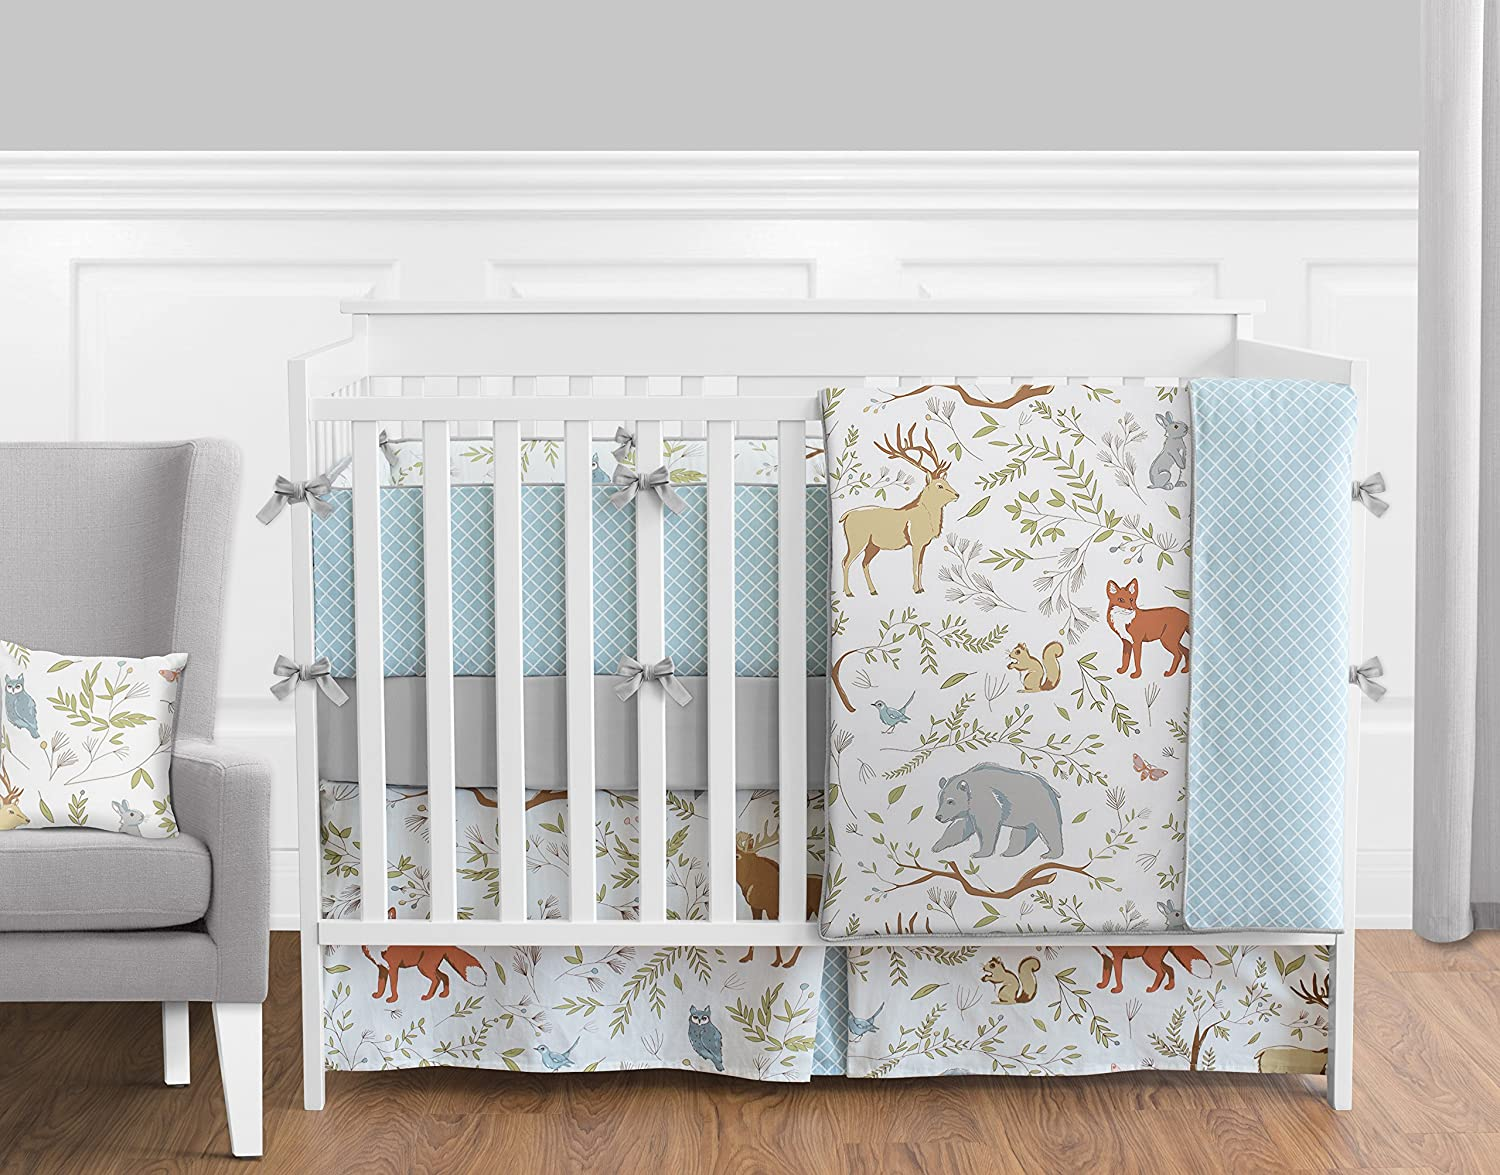 Sweet Jojo Designs 9-Piece Blue, Grey and White Woodland Deer Fox Bear Animal Toile Baby Girl or Boy Crib Bedding Set